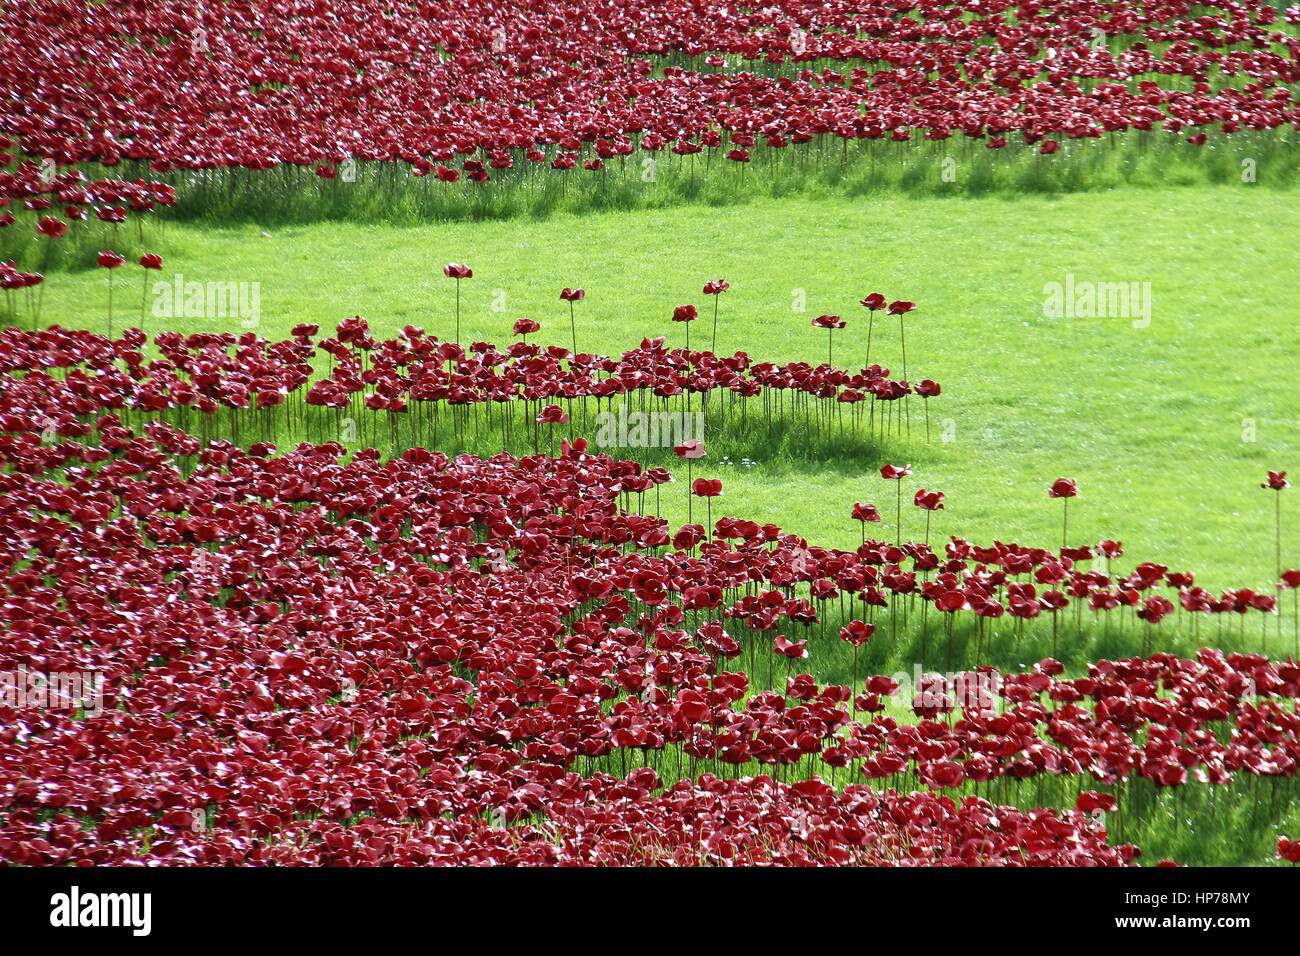 Blood Swept Lands and Seas of Red - remembrance installation by the Tower of London - Stock Image